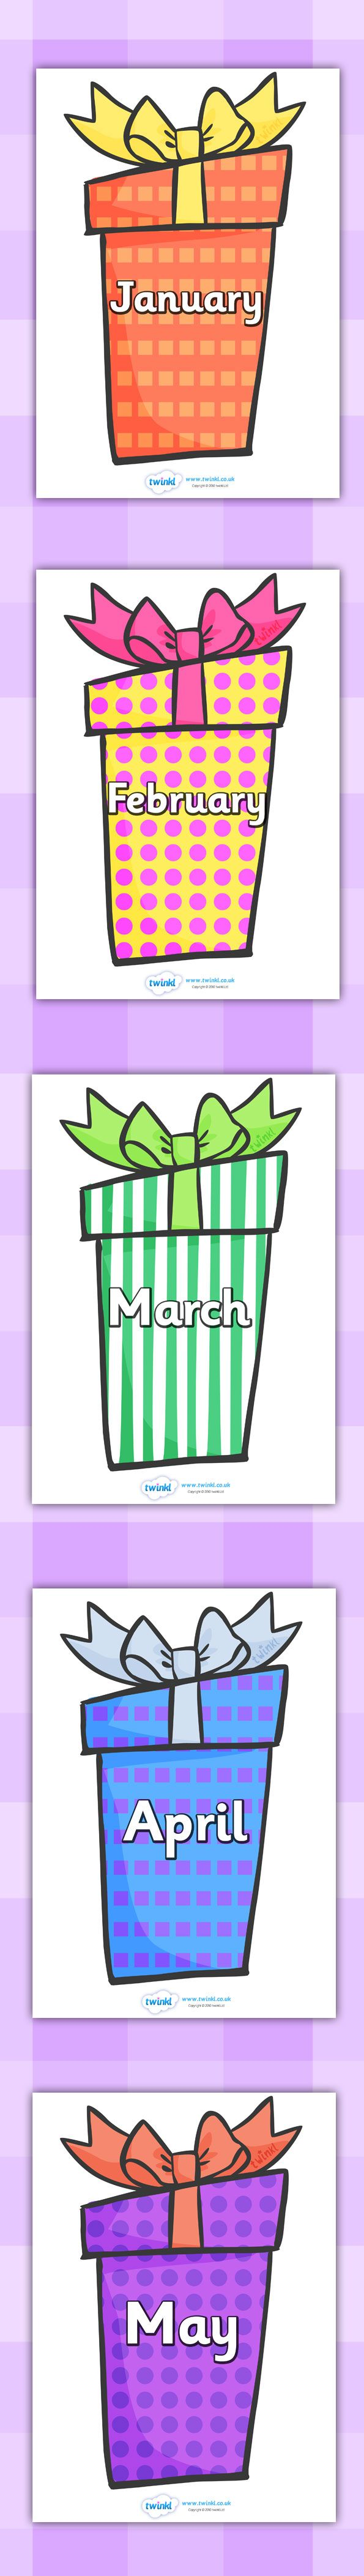 Calendar Ideas Twinkl : Twinkl resources months of the year on birthday presents